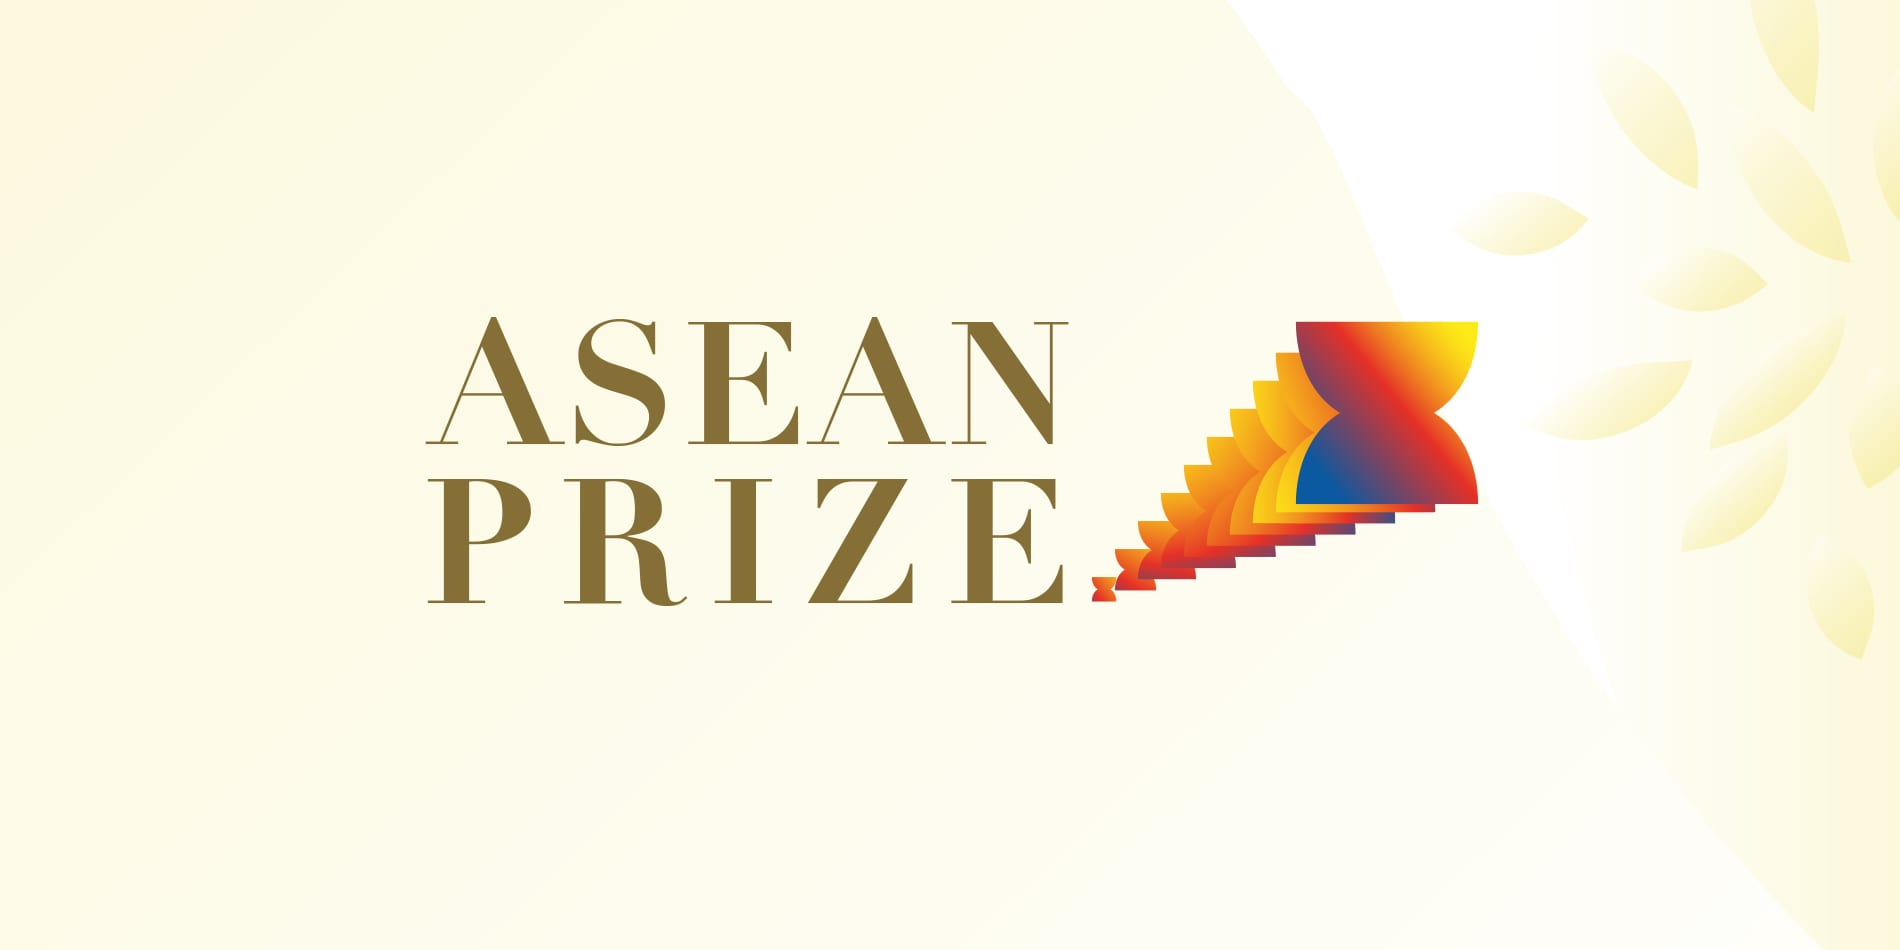 Association of Southeast Asian Nations (ASEAN) Reward 2018 (US$20,000 reward)